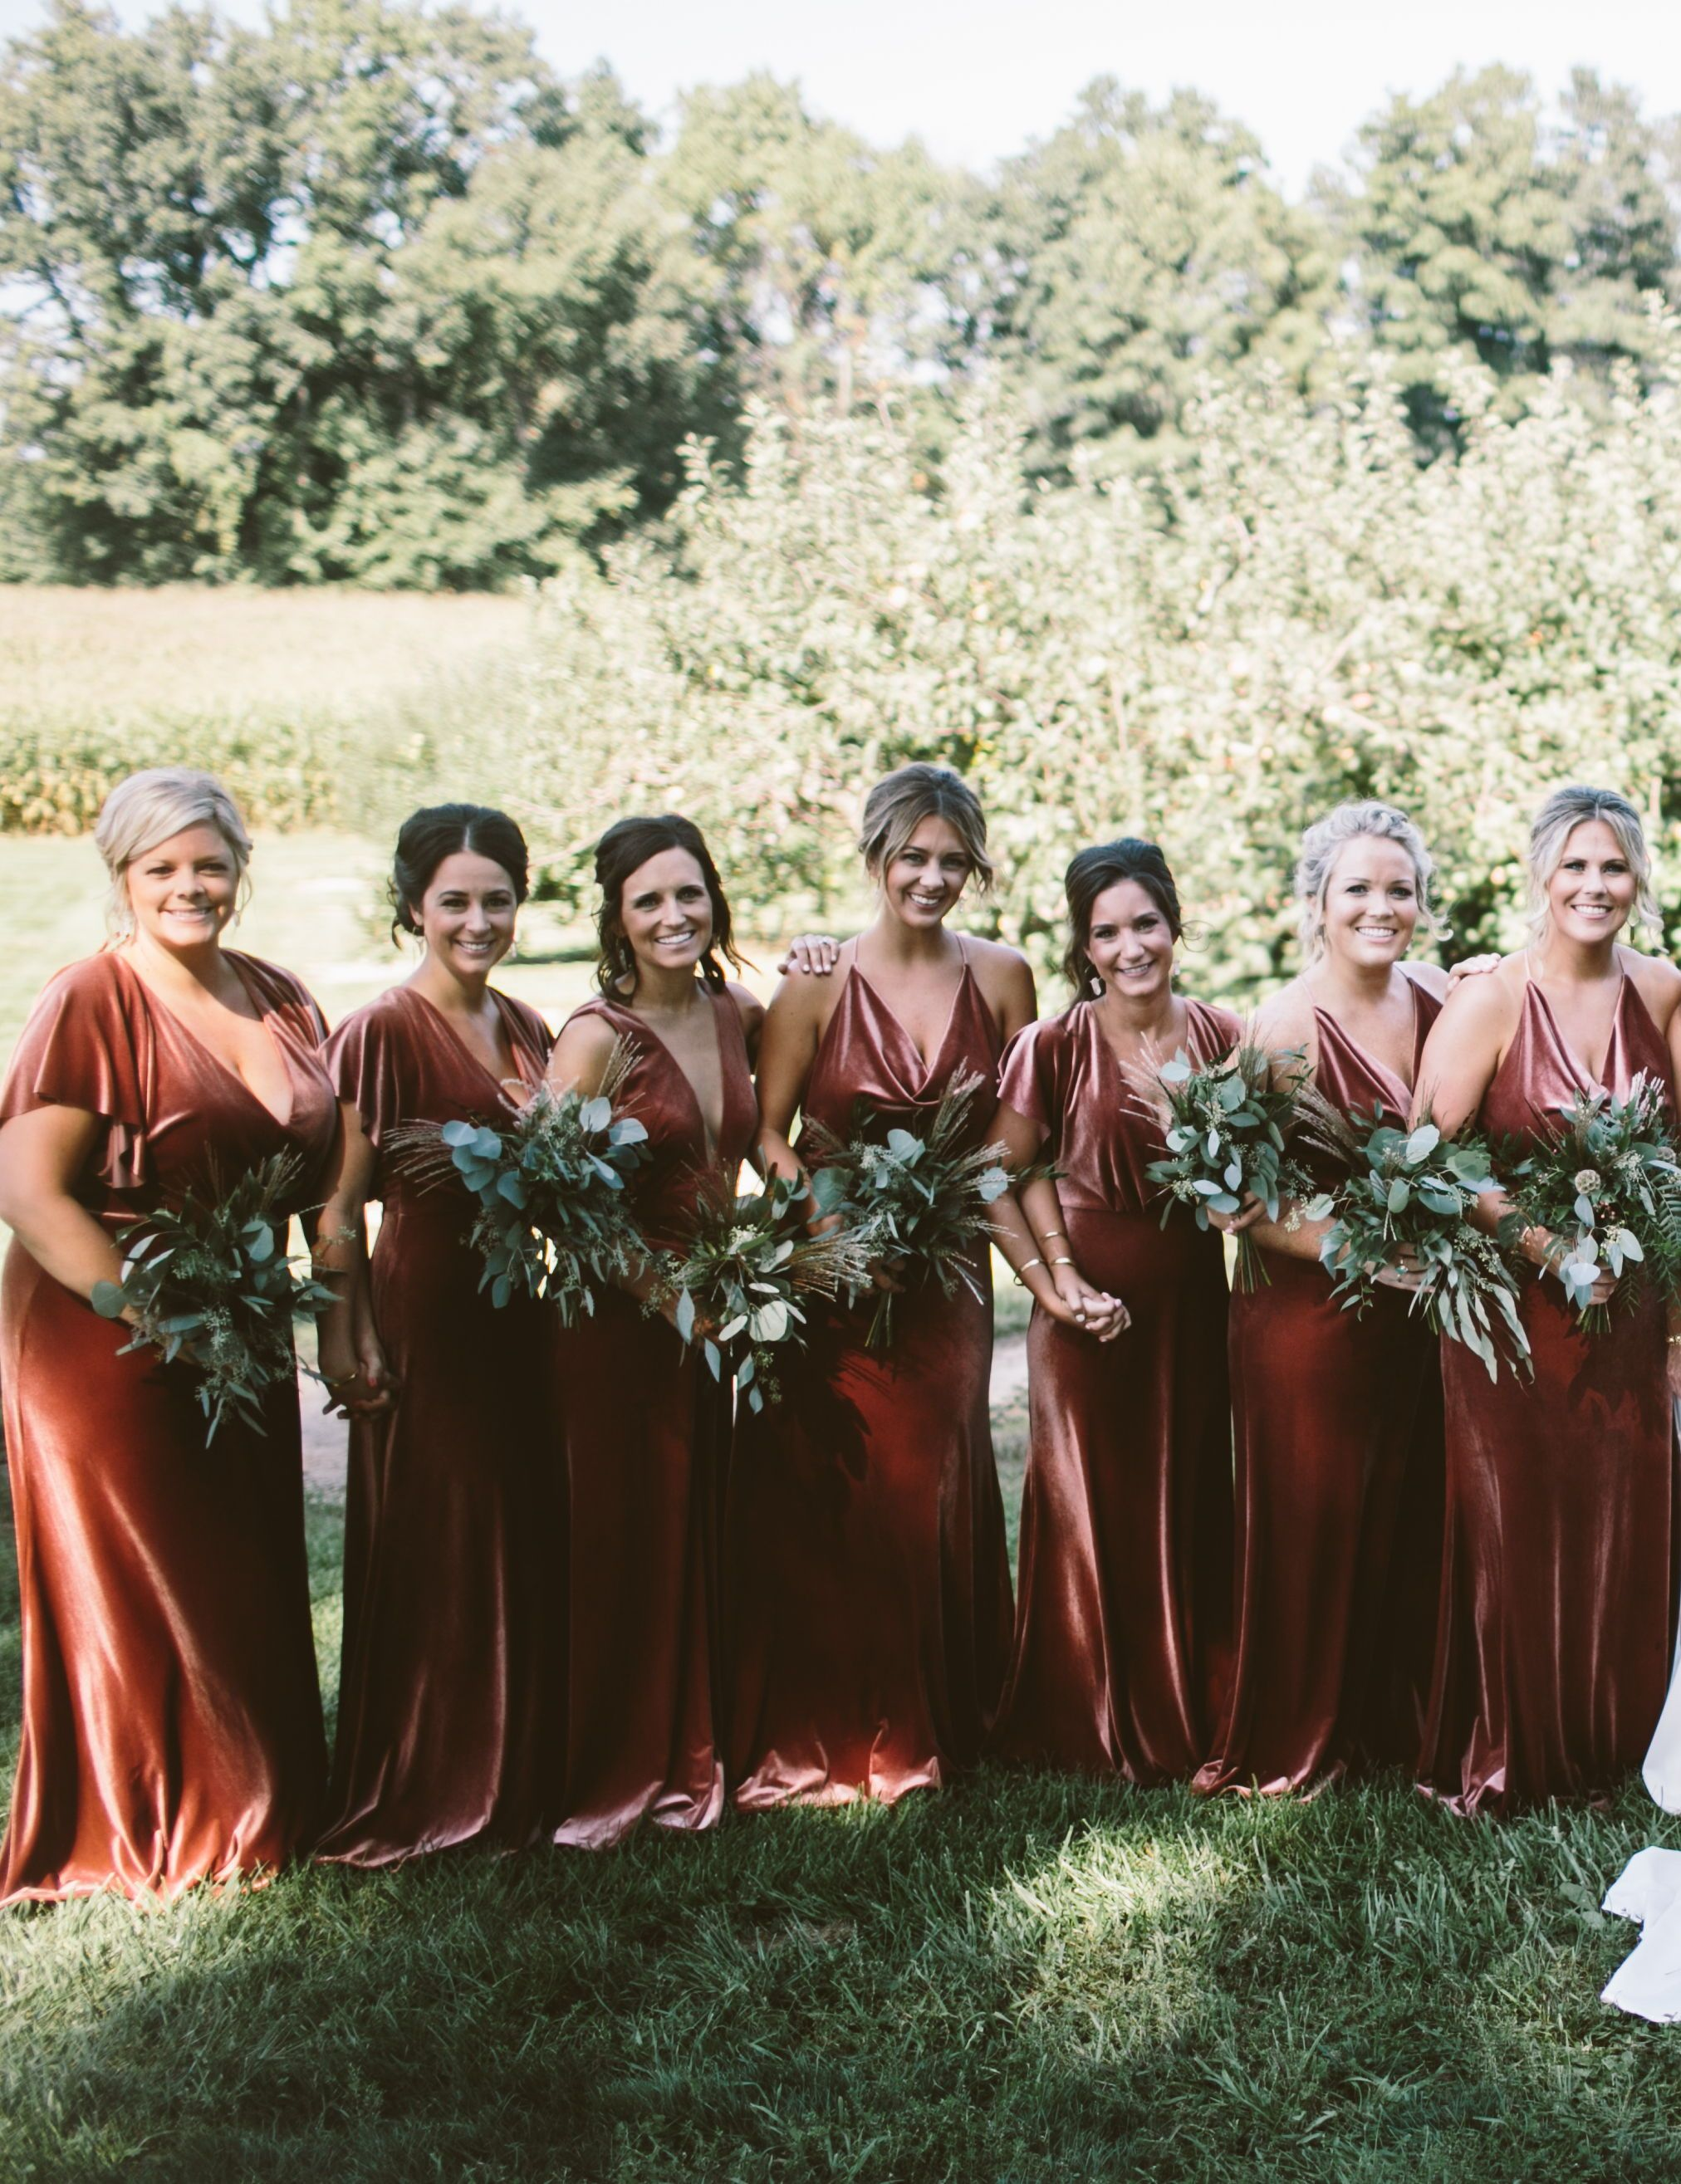 cc5816f8e26 Luxe Velvet bridesmaids dresses! These stunning gowns by Jenny Yoo in this  rustic shade called English Rose is the perfect autumn   fall bridal party  look.